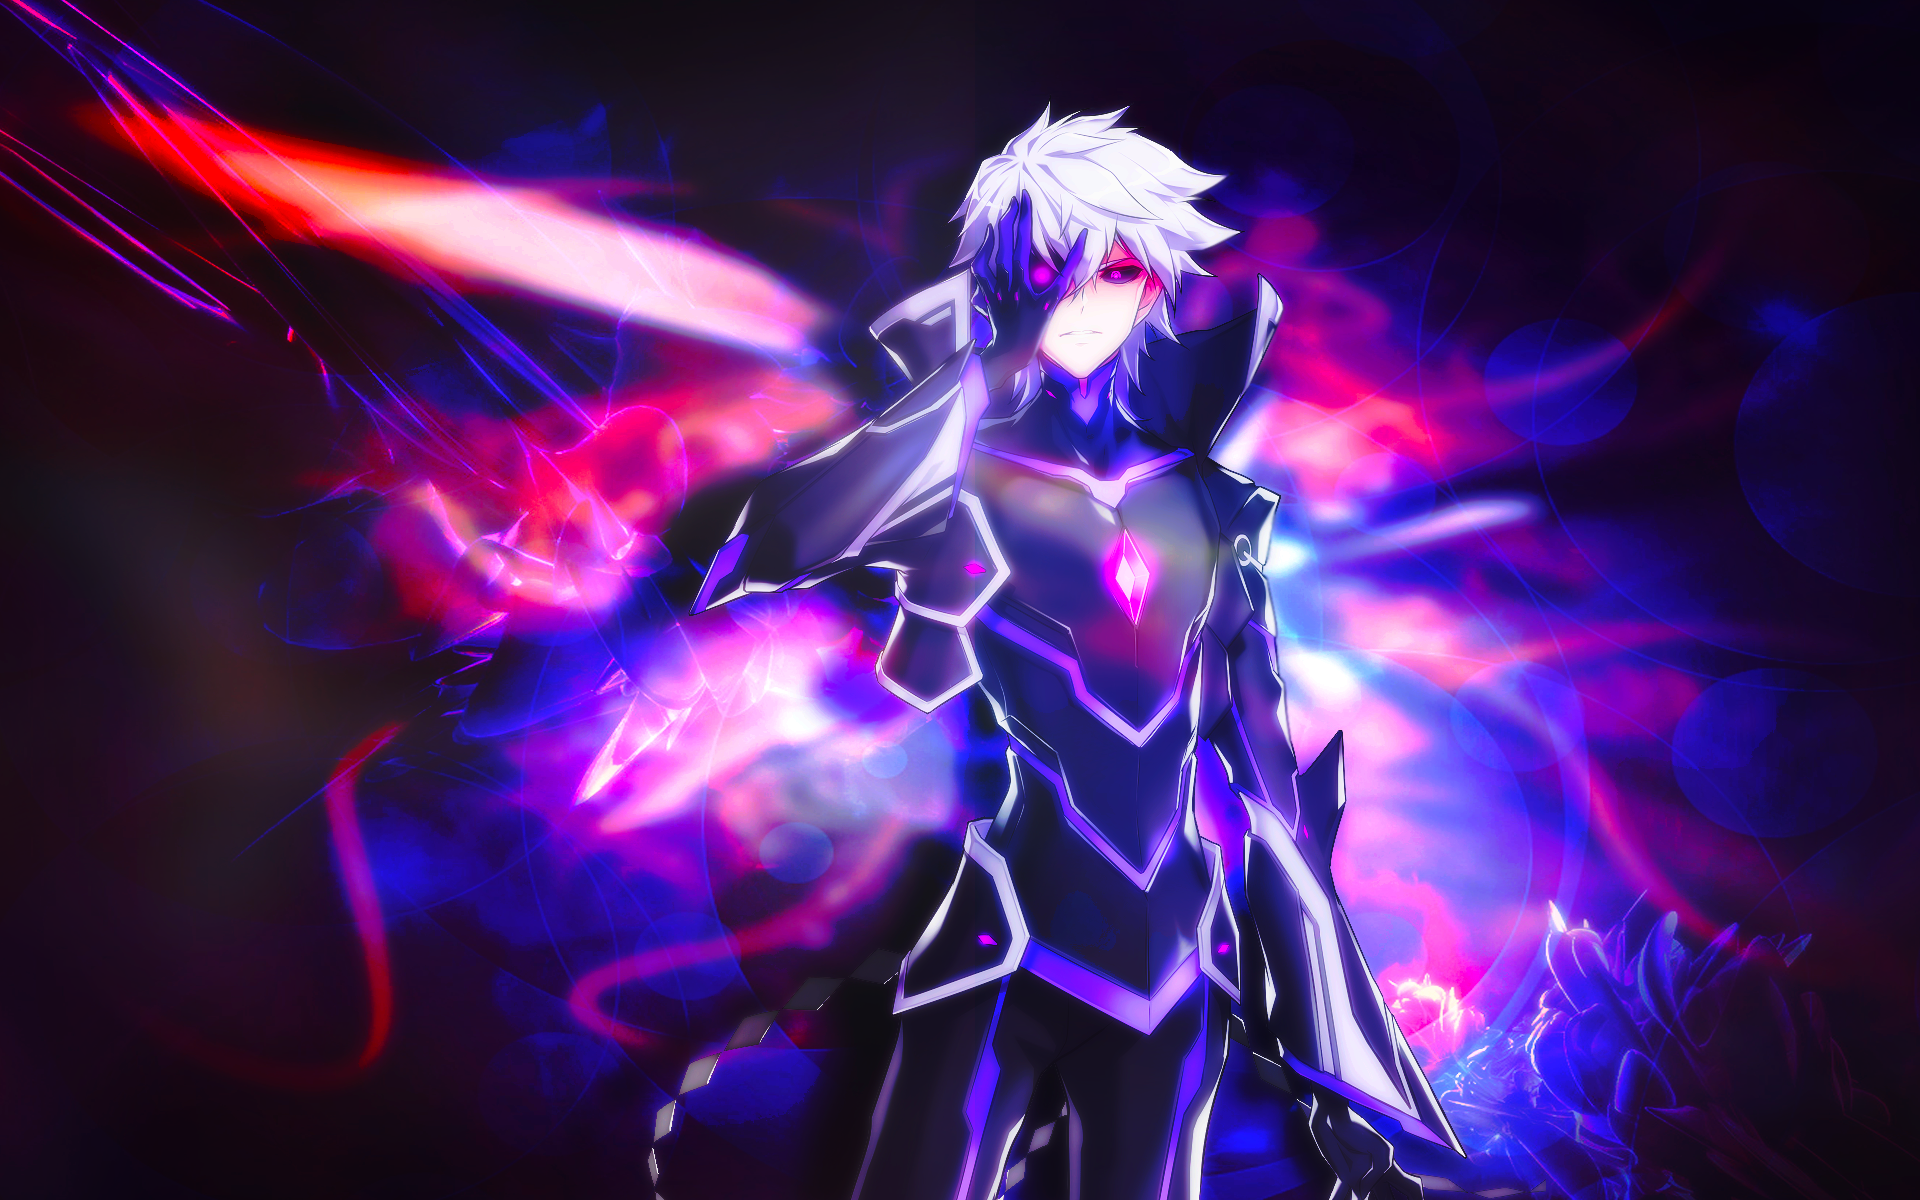 Elsword add wallpaper wallpapersafari for Deviantart wallpaper